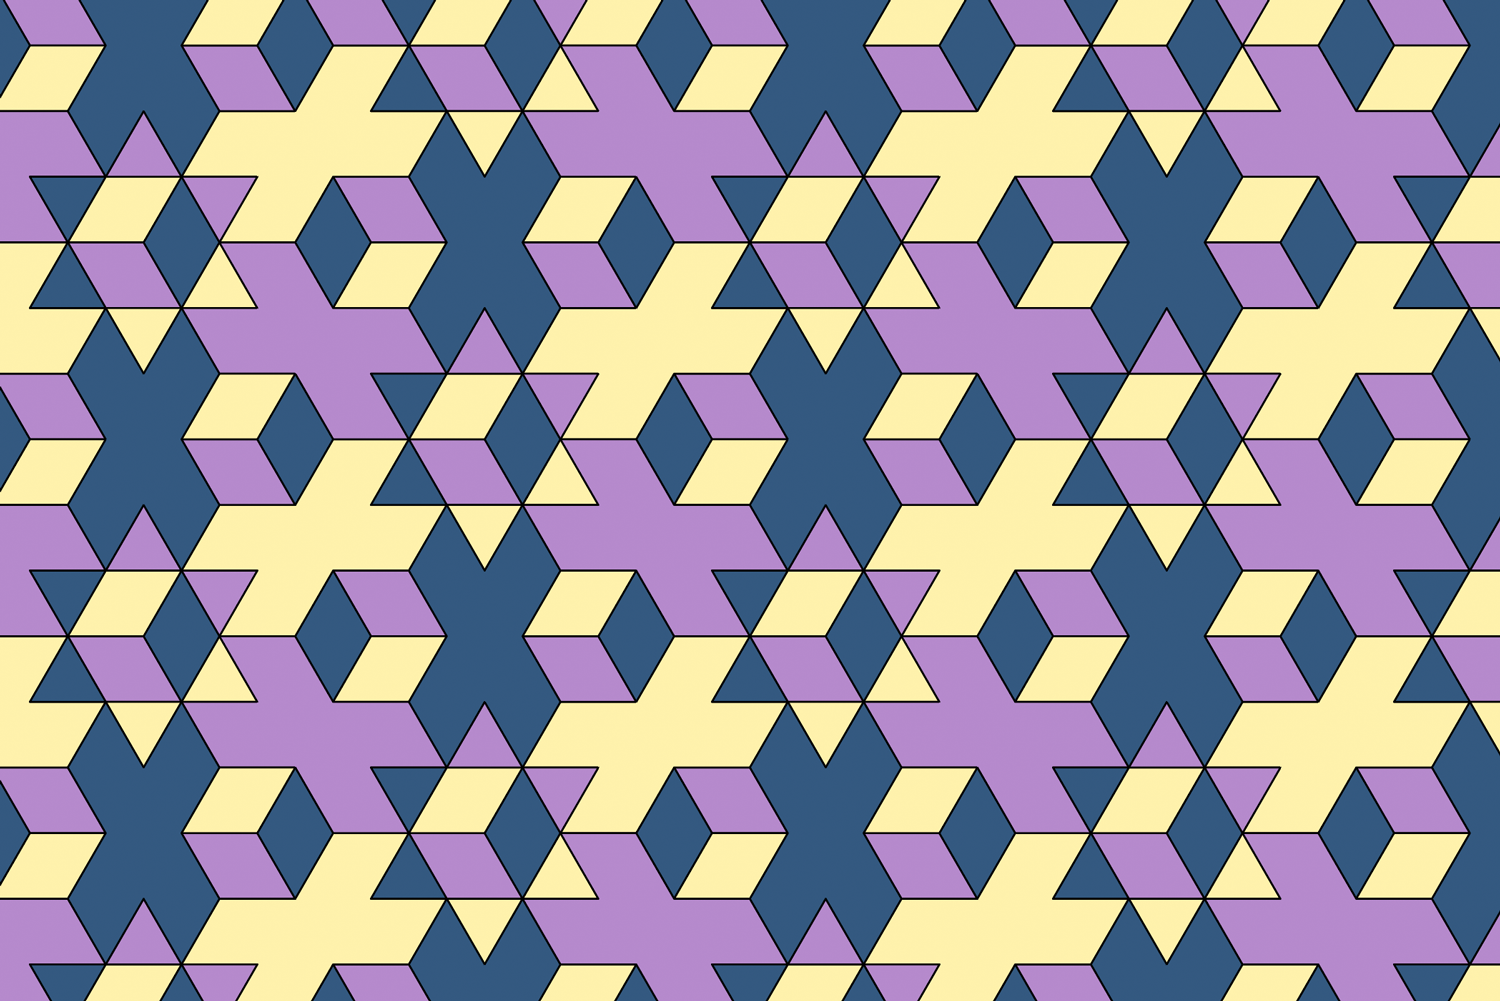 A pattern created from the gobstopper shape in Adobe Illustrator